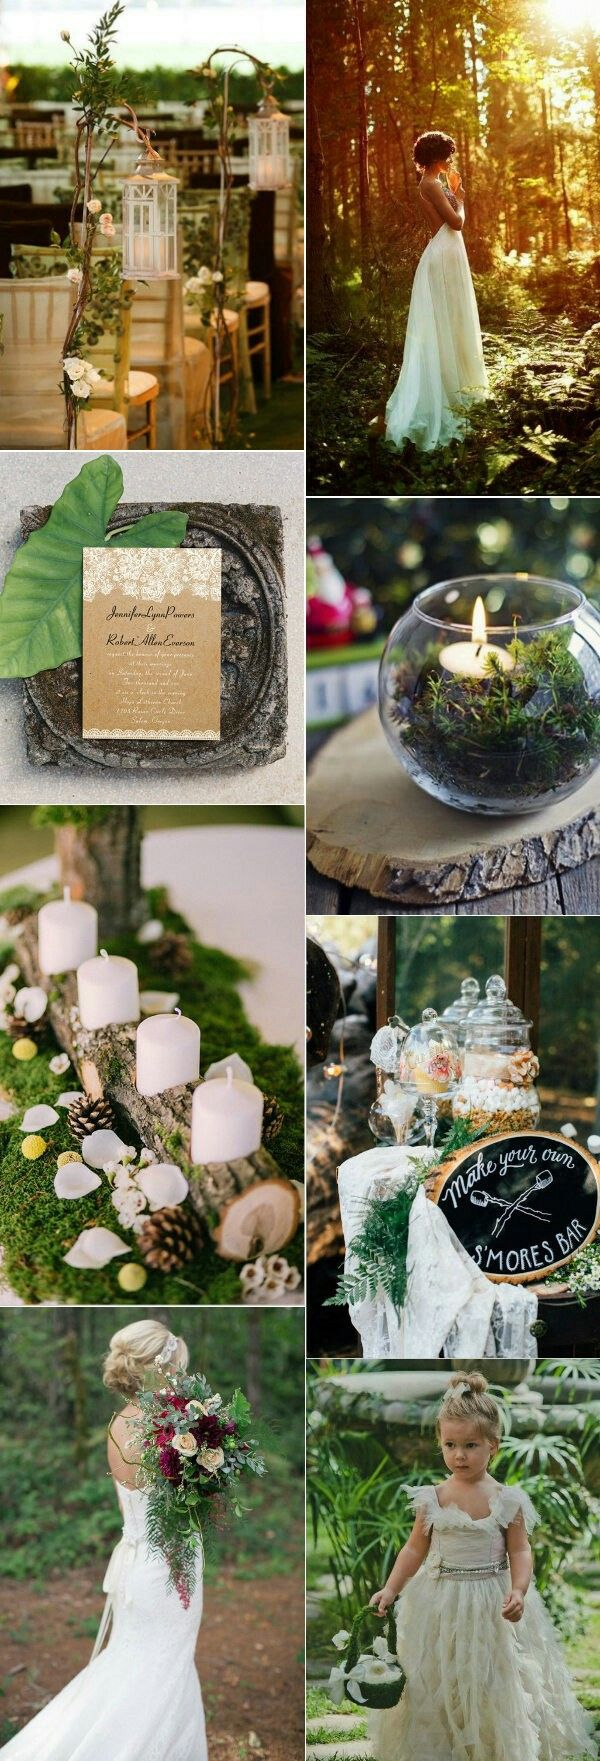 Wedding decorations near me october 2018 Pin by Jessica Stroud on October  board  Pinterest  Wedding